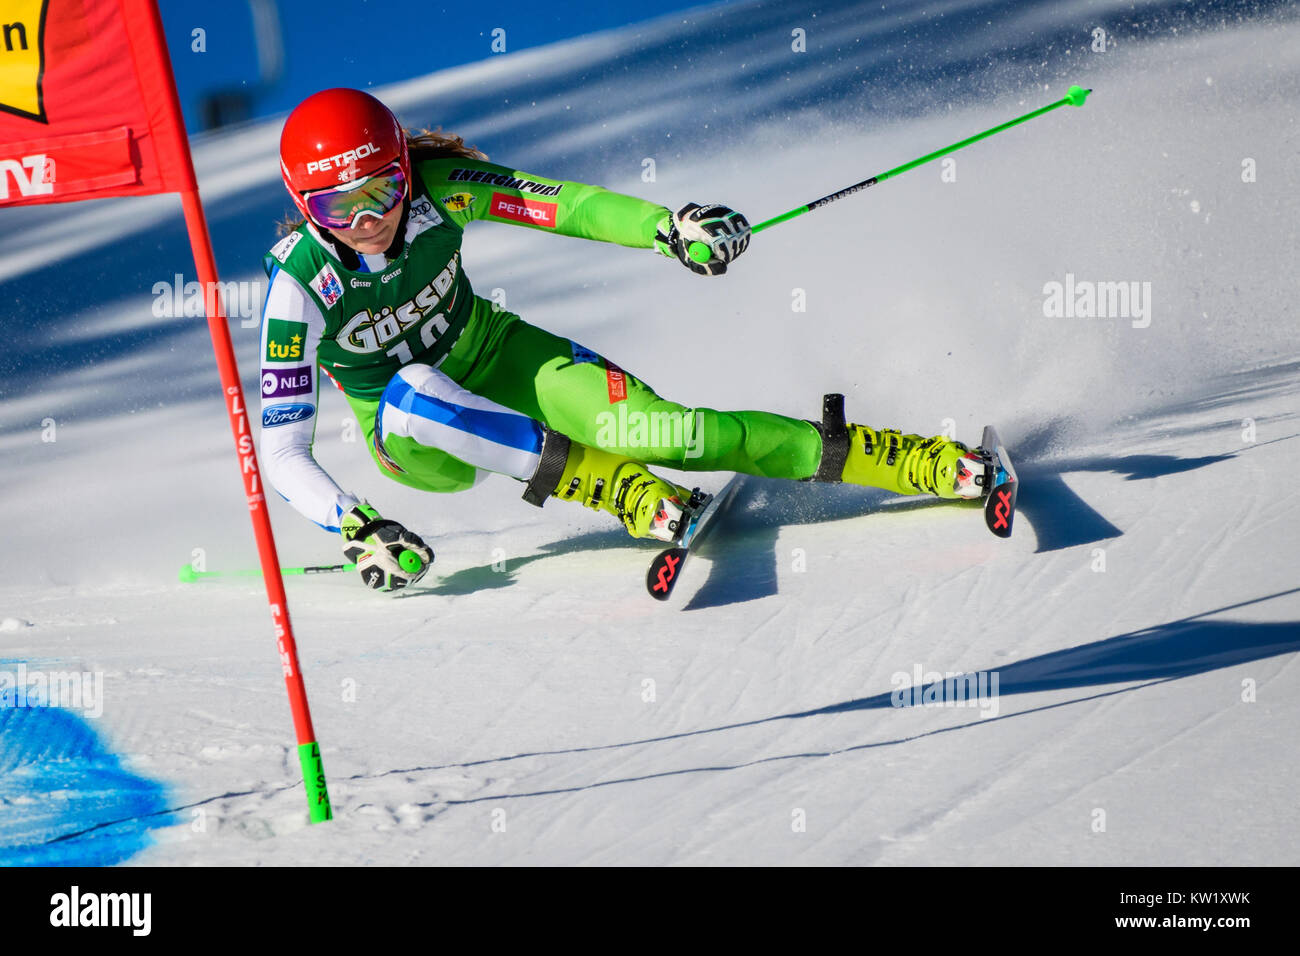 Lienz, Austria. 29th Dec, 2017. Ana Drev of Slovenia competes during the FIS World Cup Ladies Giant Slalom race Stock Photo